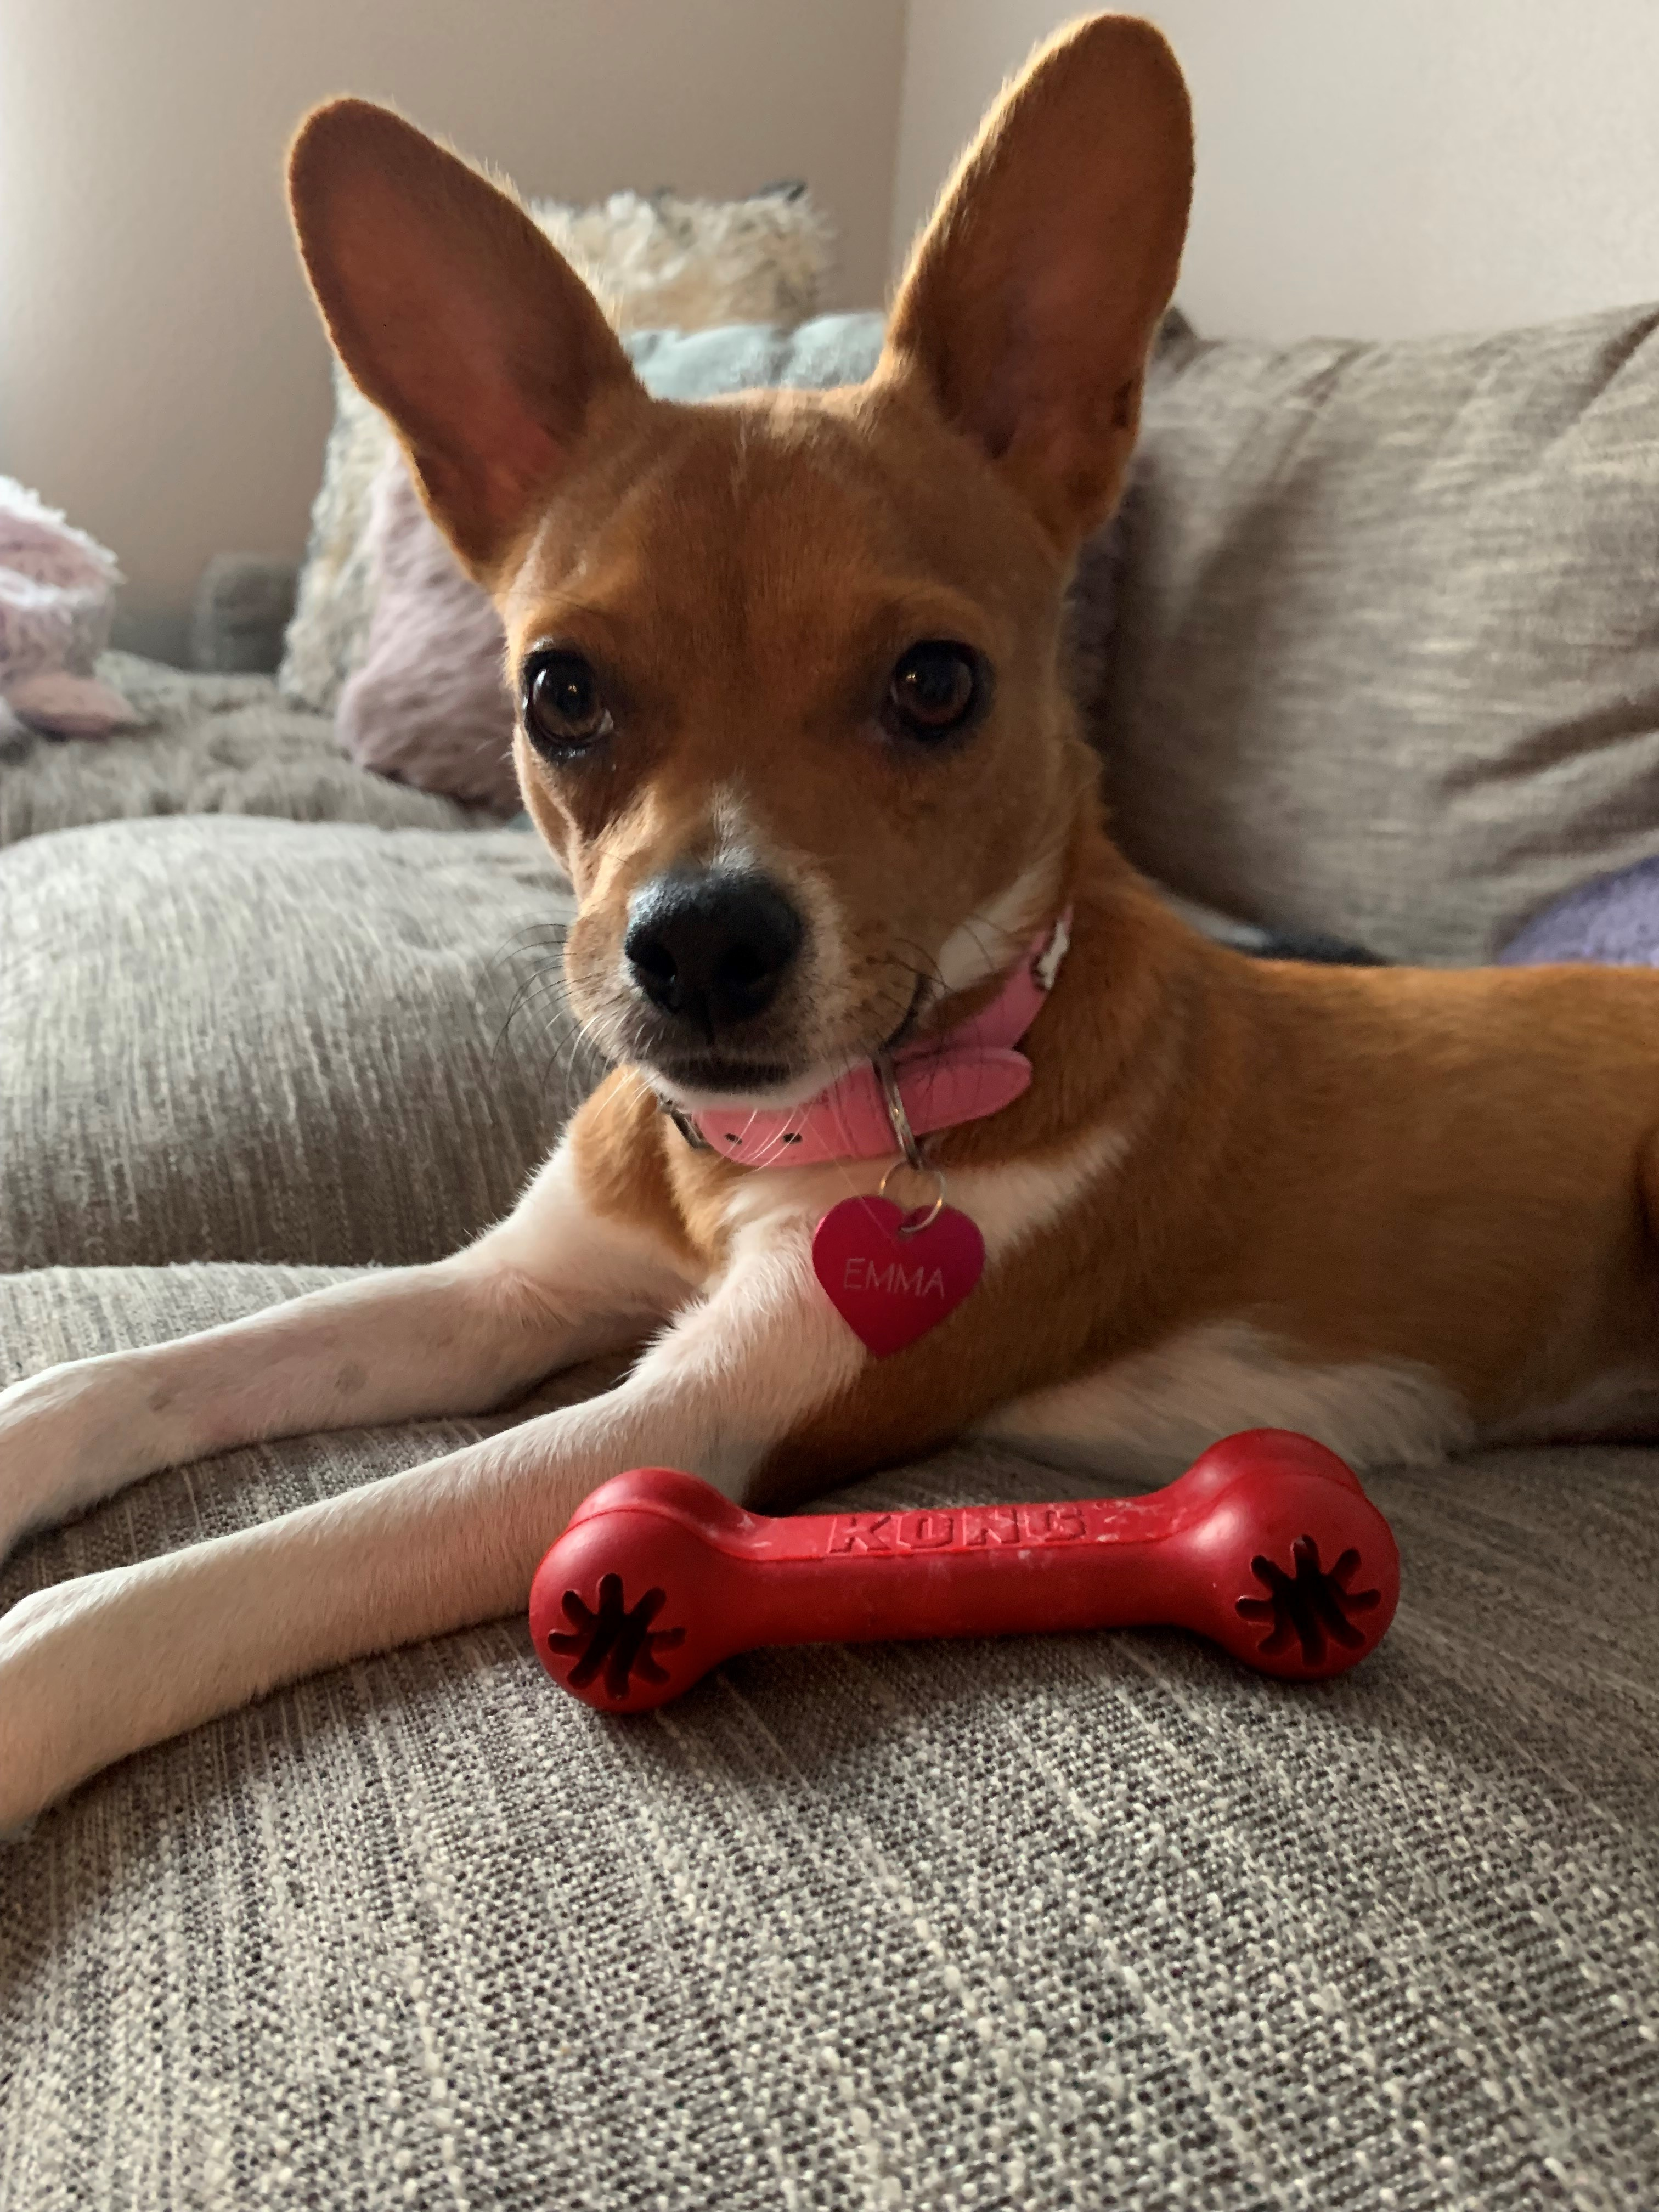 Toy Rat Terriers For Sale : terriers, Adoption, Emma,, Chihuahua, Terrier, Gilbert,, Petfinder